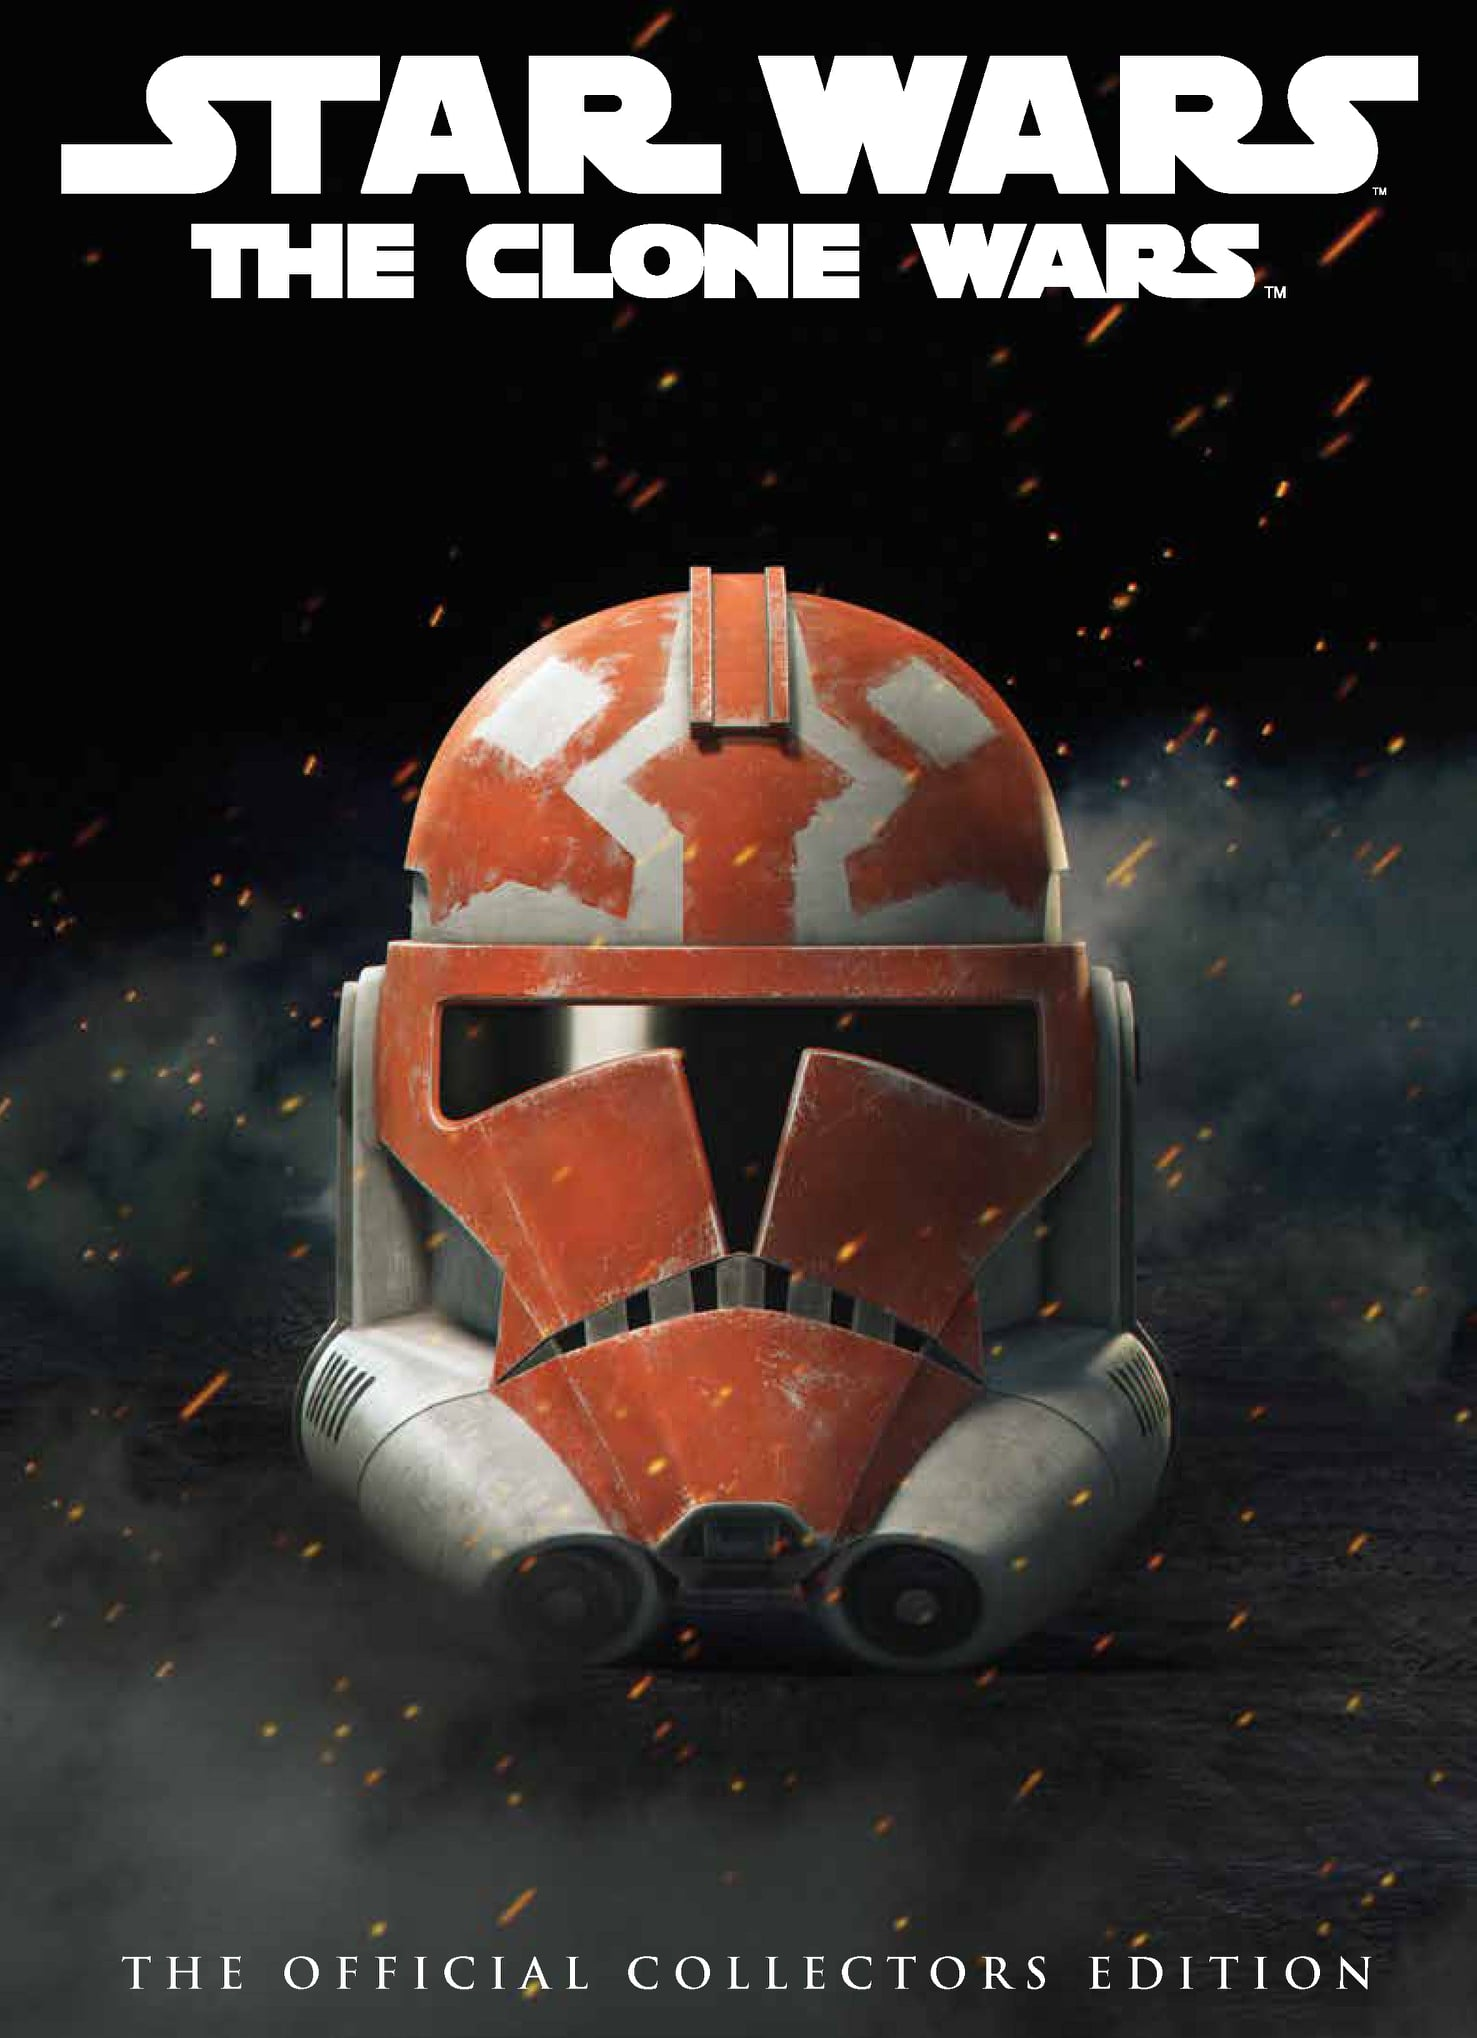 Star Wars The Clone Wars: Official Collector's Edition (Previews Exlcusive Edition)